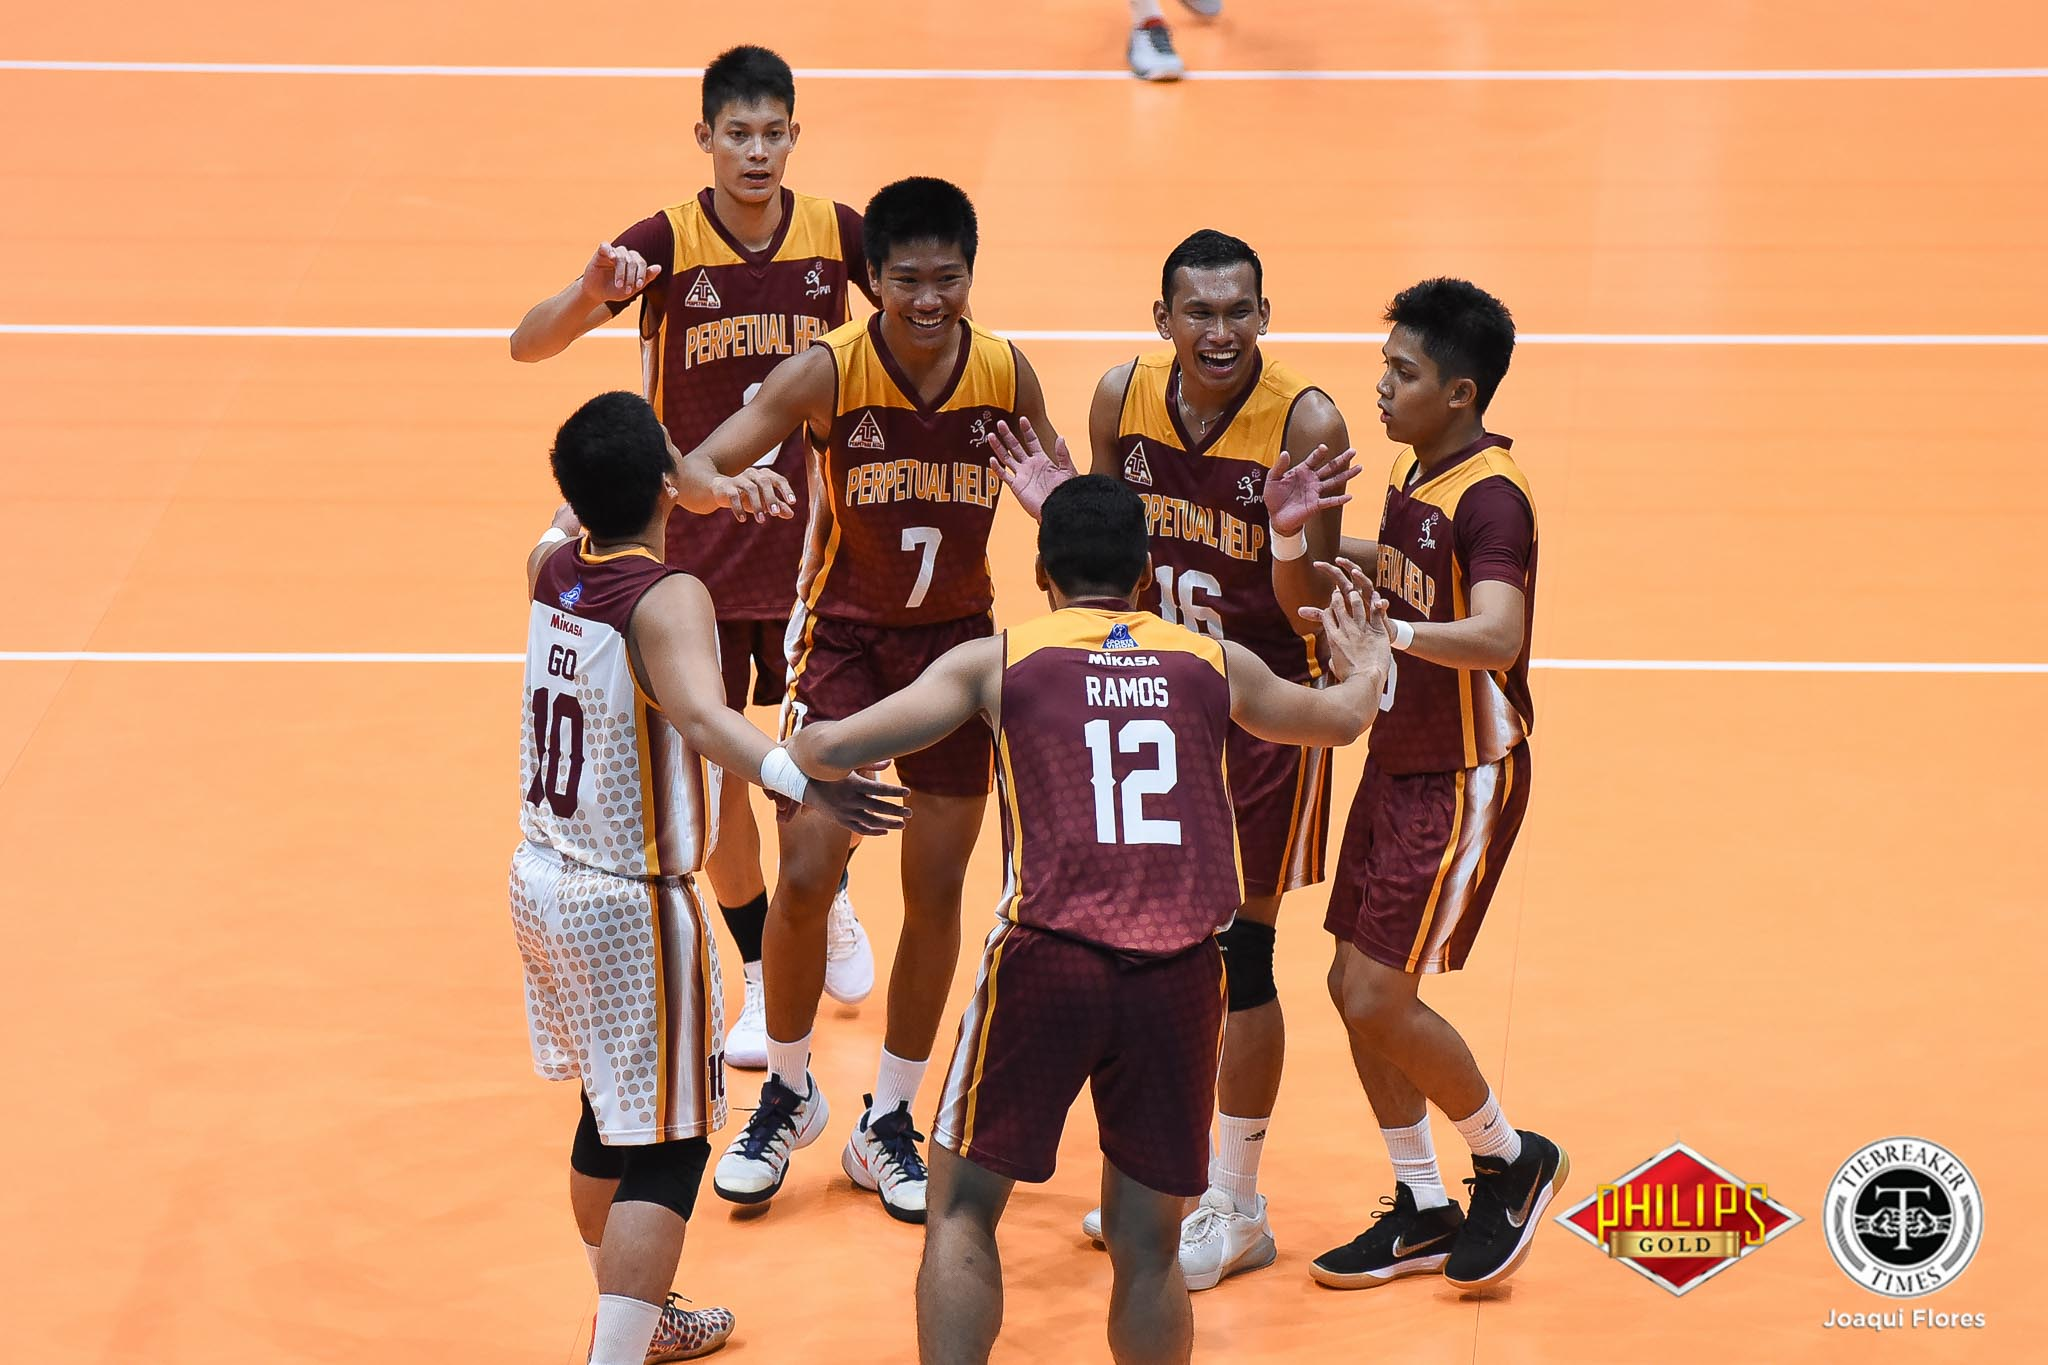 Tiebreaker Times Perpetual outlasts Arellano for second win AU News PVL UPHSD Volleyball  Sherwin Meneses Sammy Acaylar Ryann Go Ridzuan Muhali Perpetual Men's Volleyball Joebert Almodiel EJ Casana Demmy Lapuz Arellano Men's Volleyball 2018 PVL Season 2018 PVL Men's Collegiate Conference